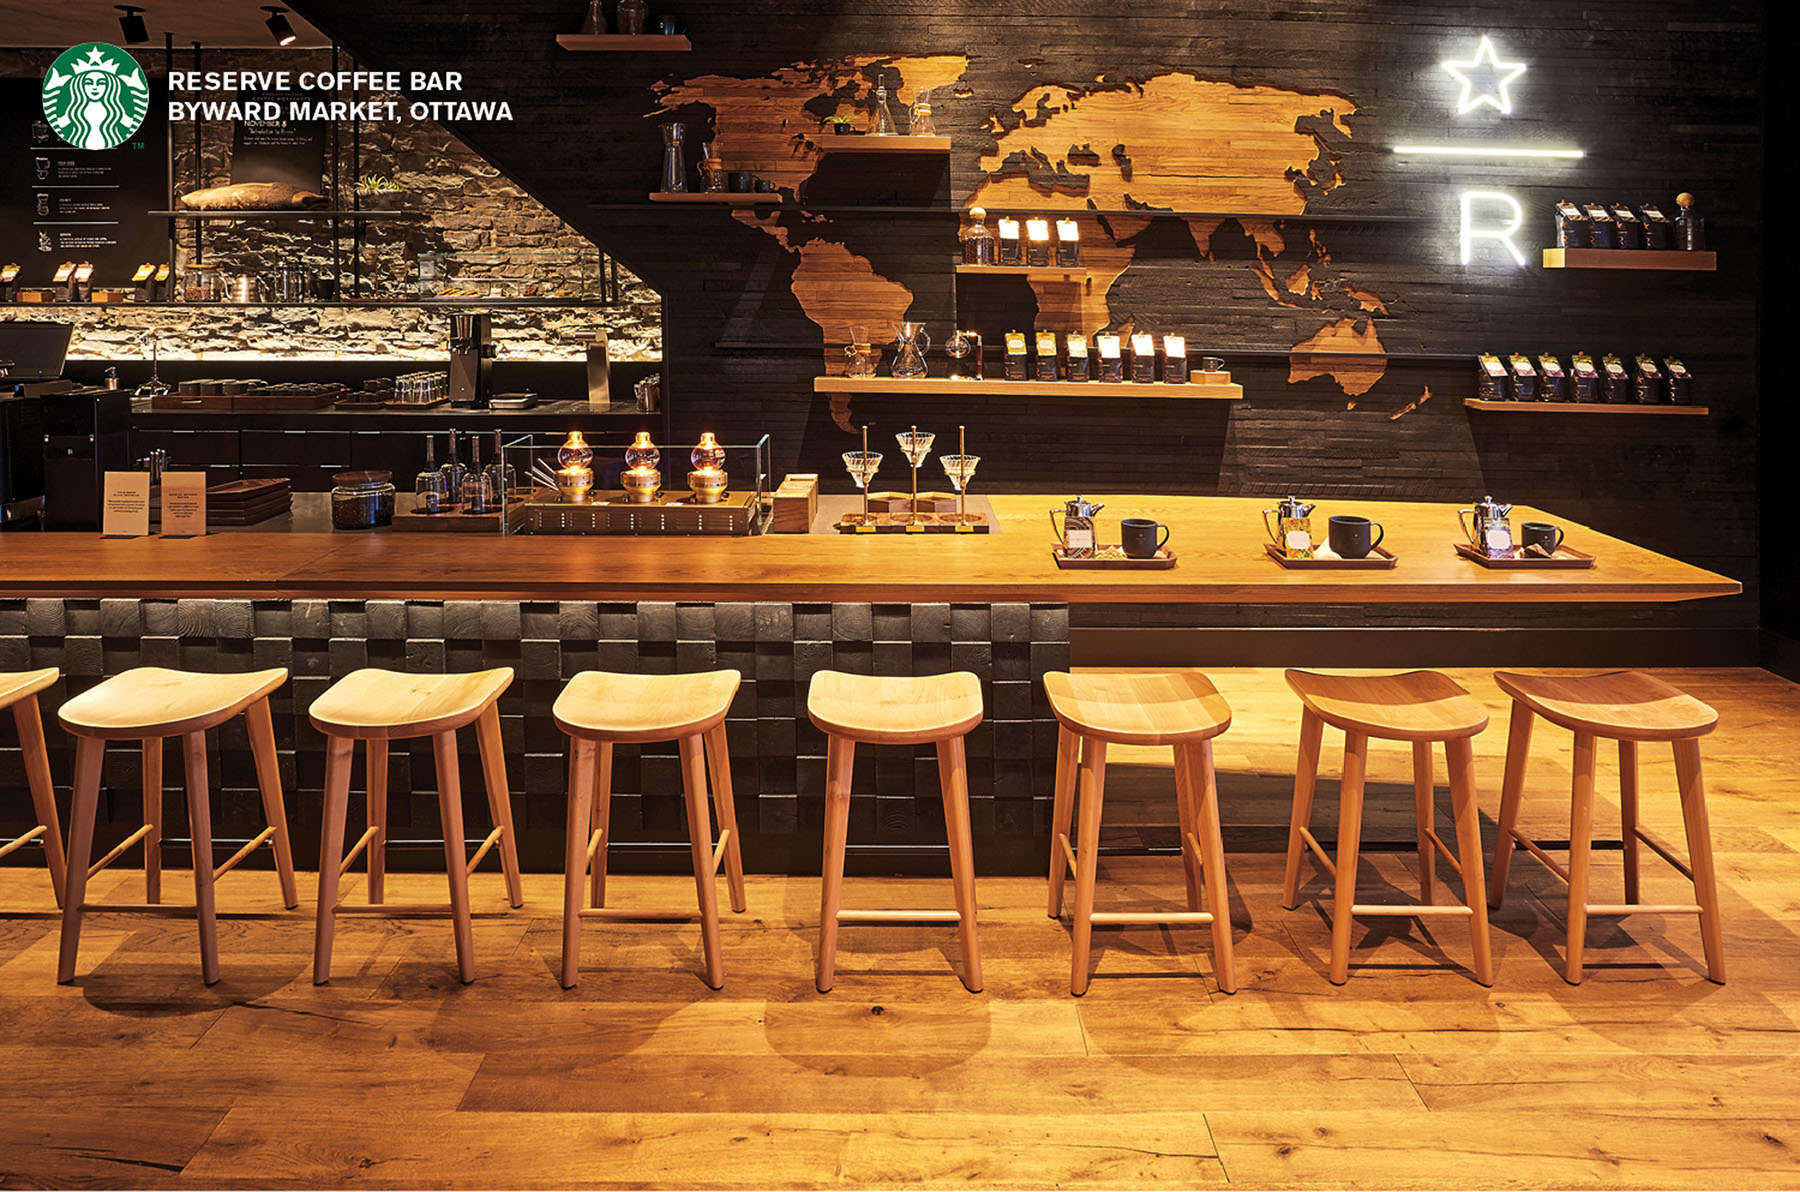 Starbucks Global  contracted matthew Liteplo to photograph their new Ottawa reserve location in the Byward Market when it opened as part of a Tandem video/stills production. The shot list includes lifestyle, food, and interior architecture images.